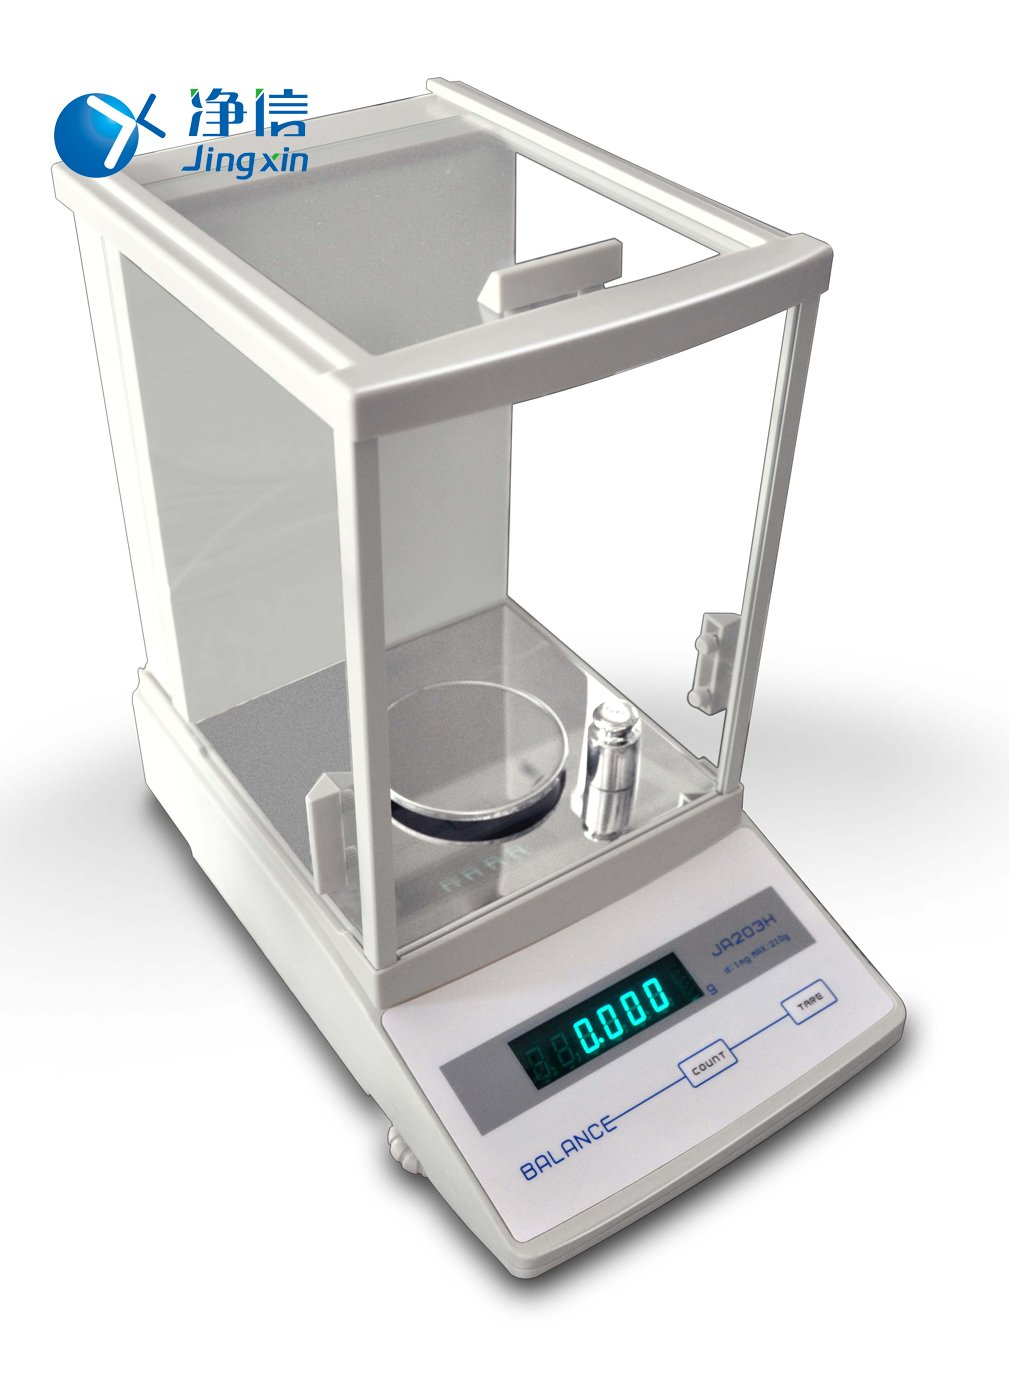 Jingxin Technology 300g/0.001g Electromagnetic Force Sensor Digital Electronic Analytical Balance Precision Scale JA3003